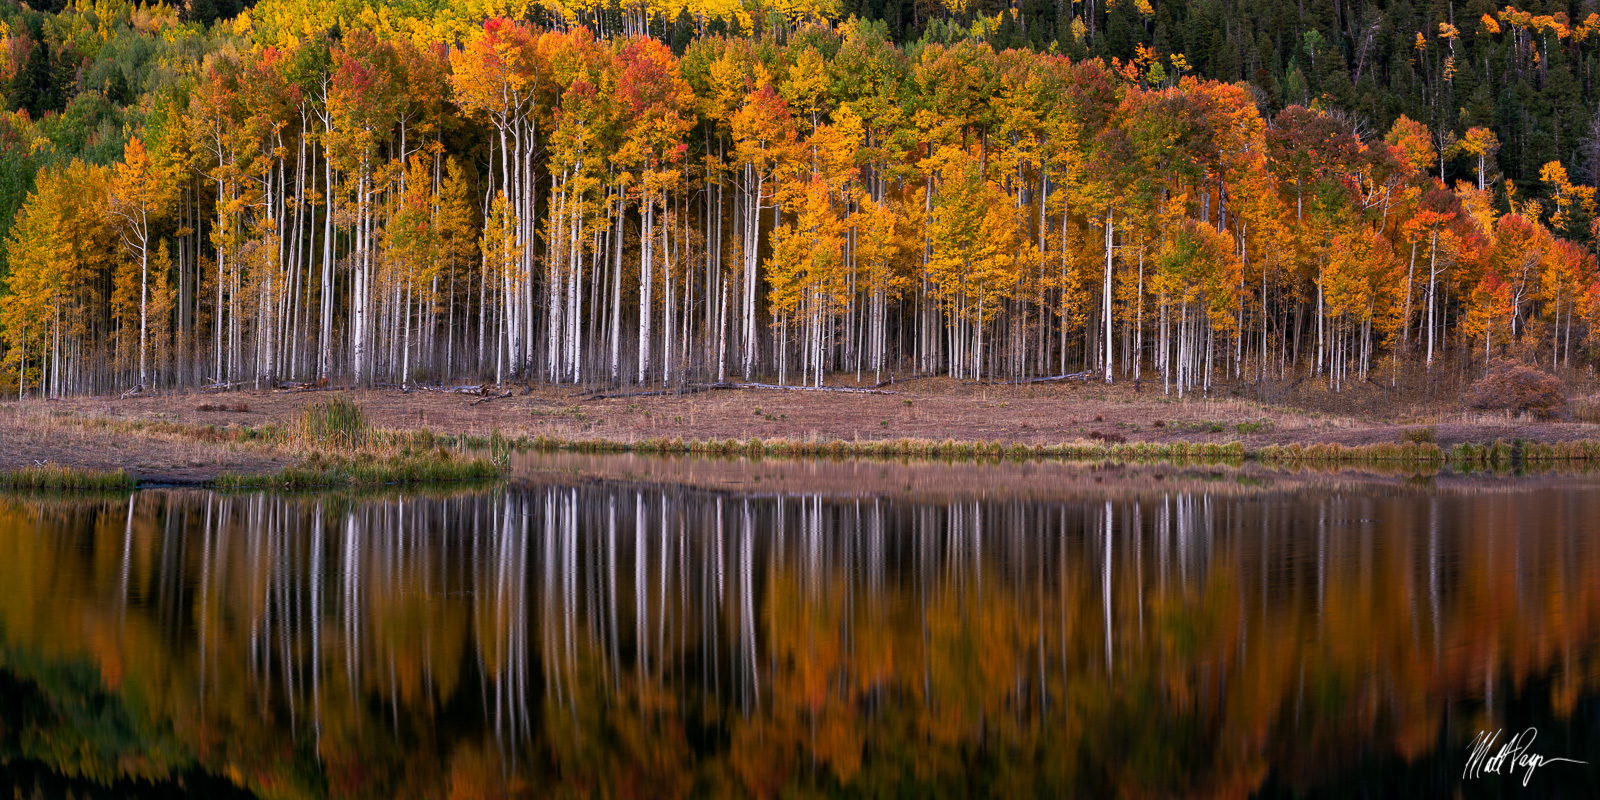 Aspen Trees, Autumn, Blue Hour, Colorado, Fall, Fall Colors, Landscape, Owl Creek Pass, Panorama, Panoramic, Reflection, Ridgway, Silver Jack Reservoir, Landscape Photography, photo